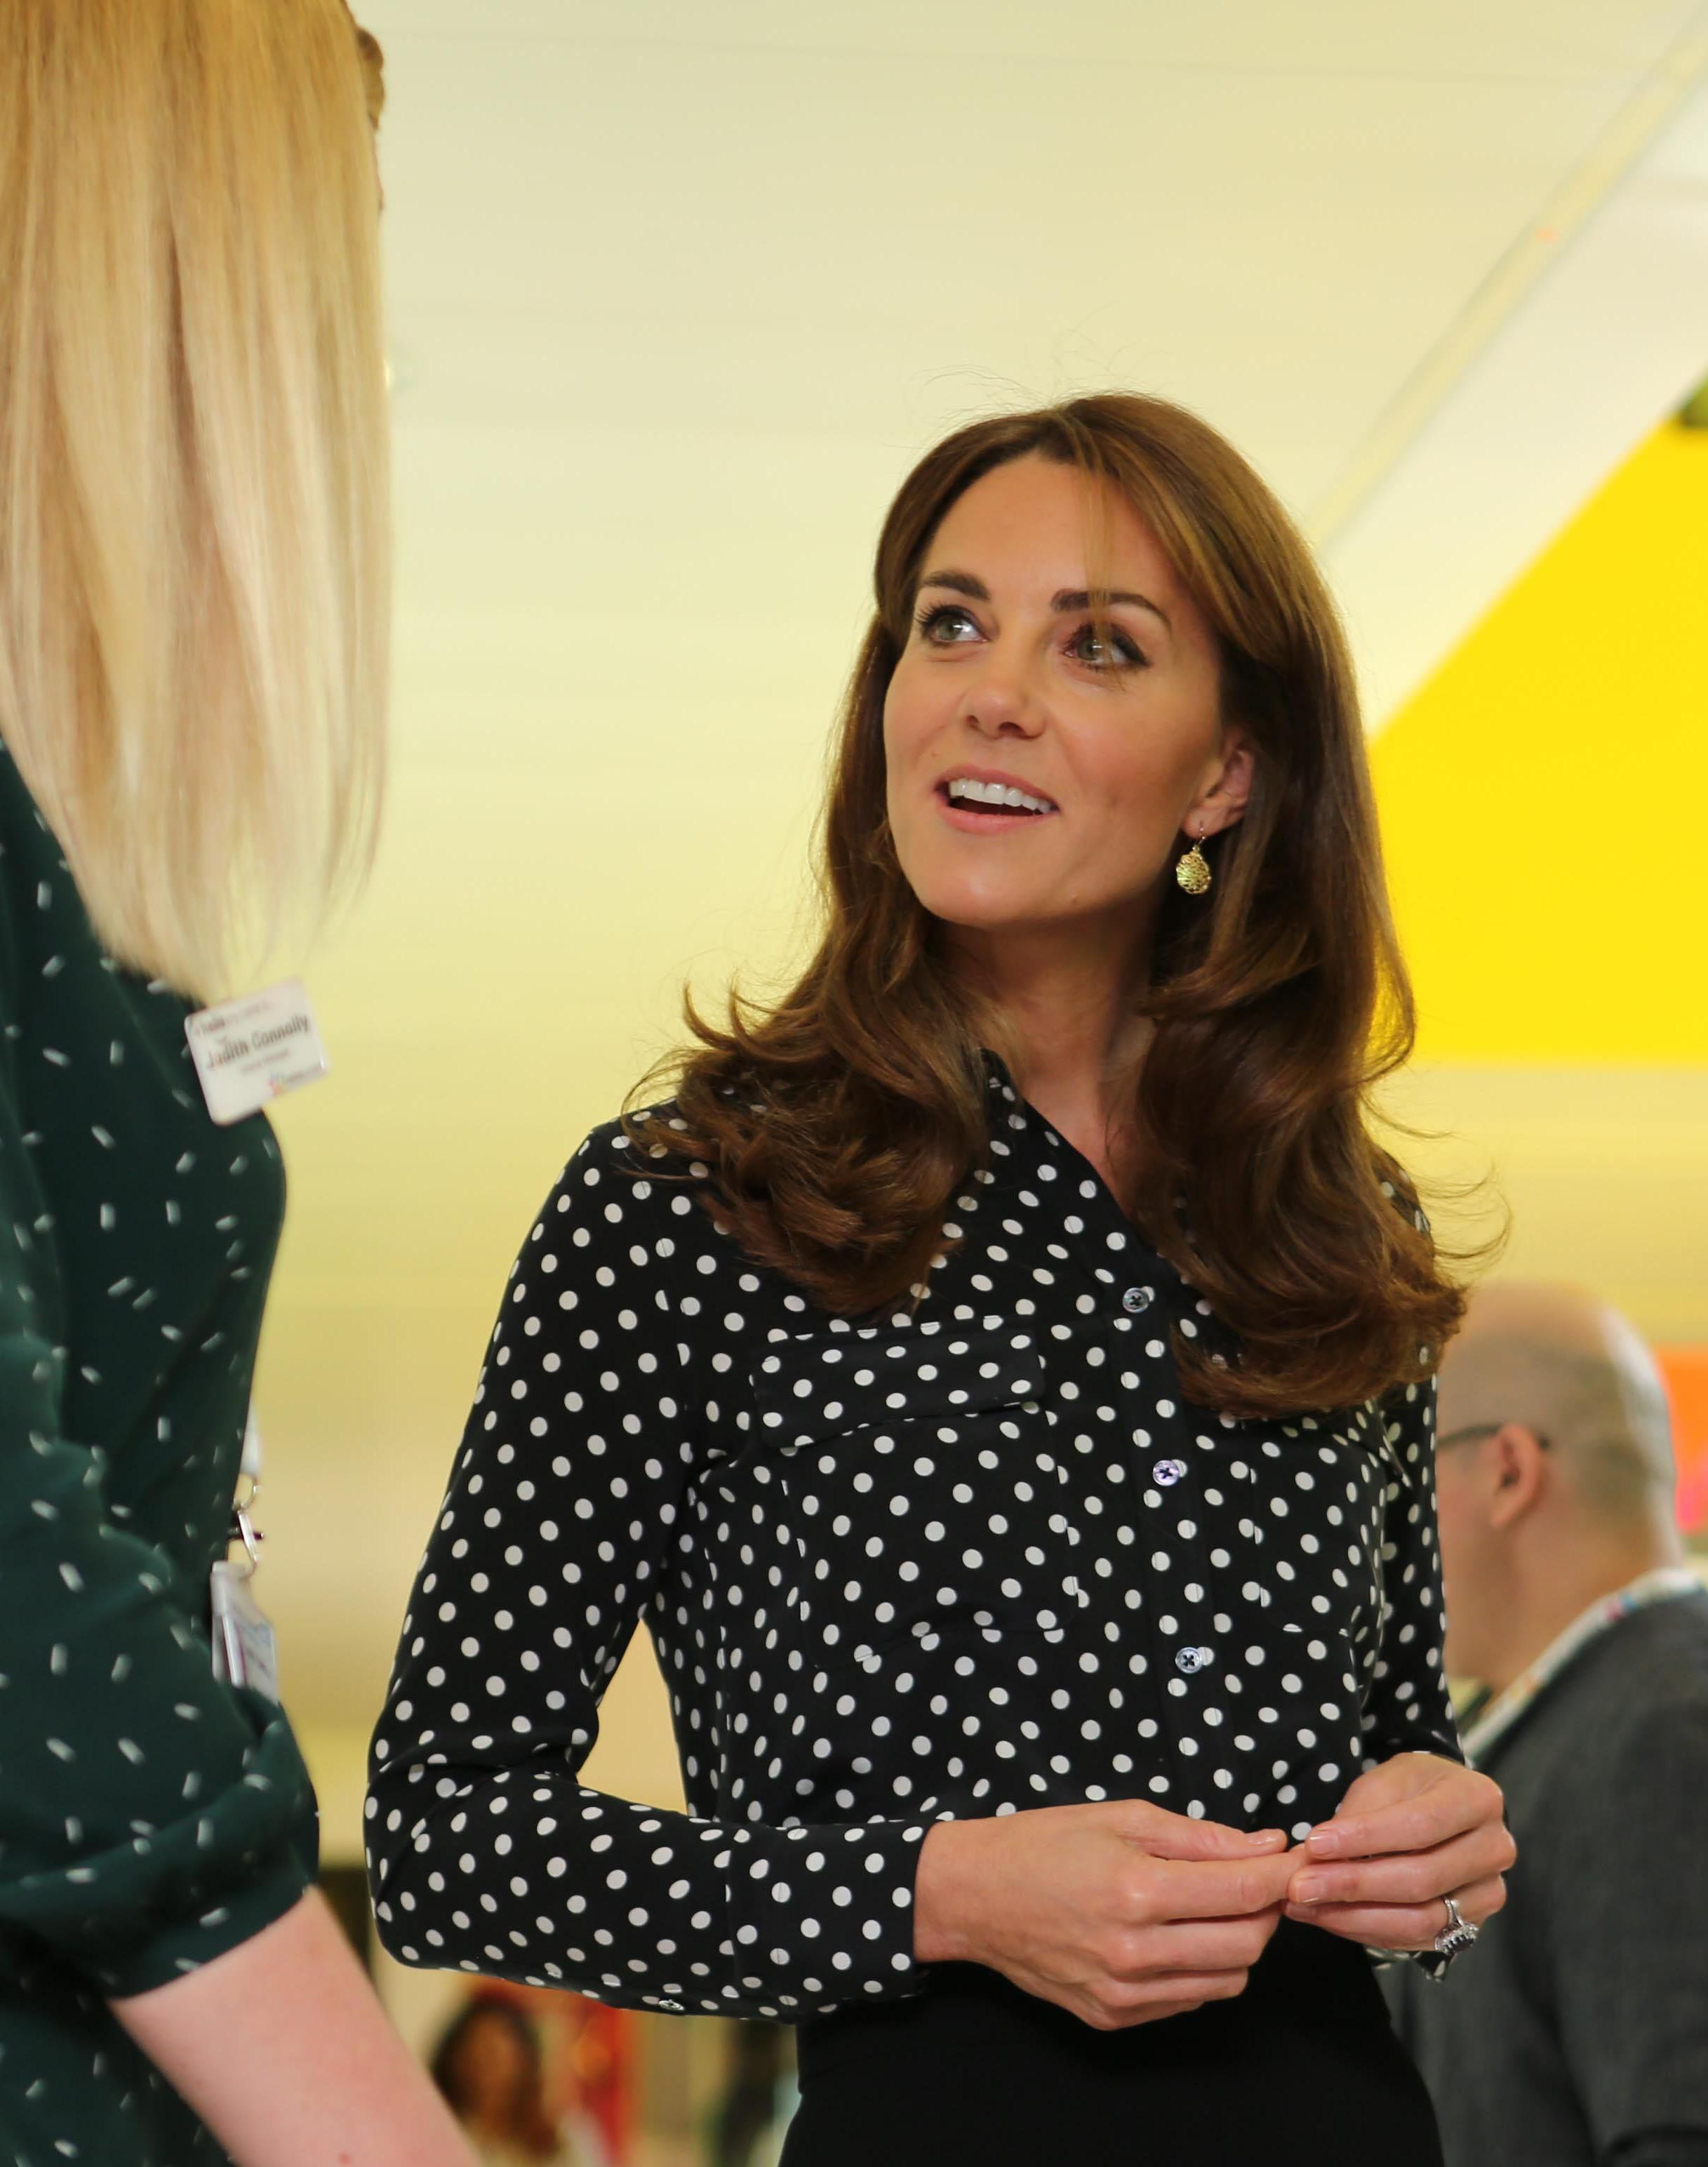 Kensington Palace releases never-before-seen photo of Kate Middleton – and we love her dress